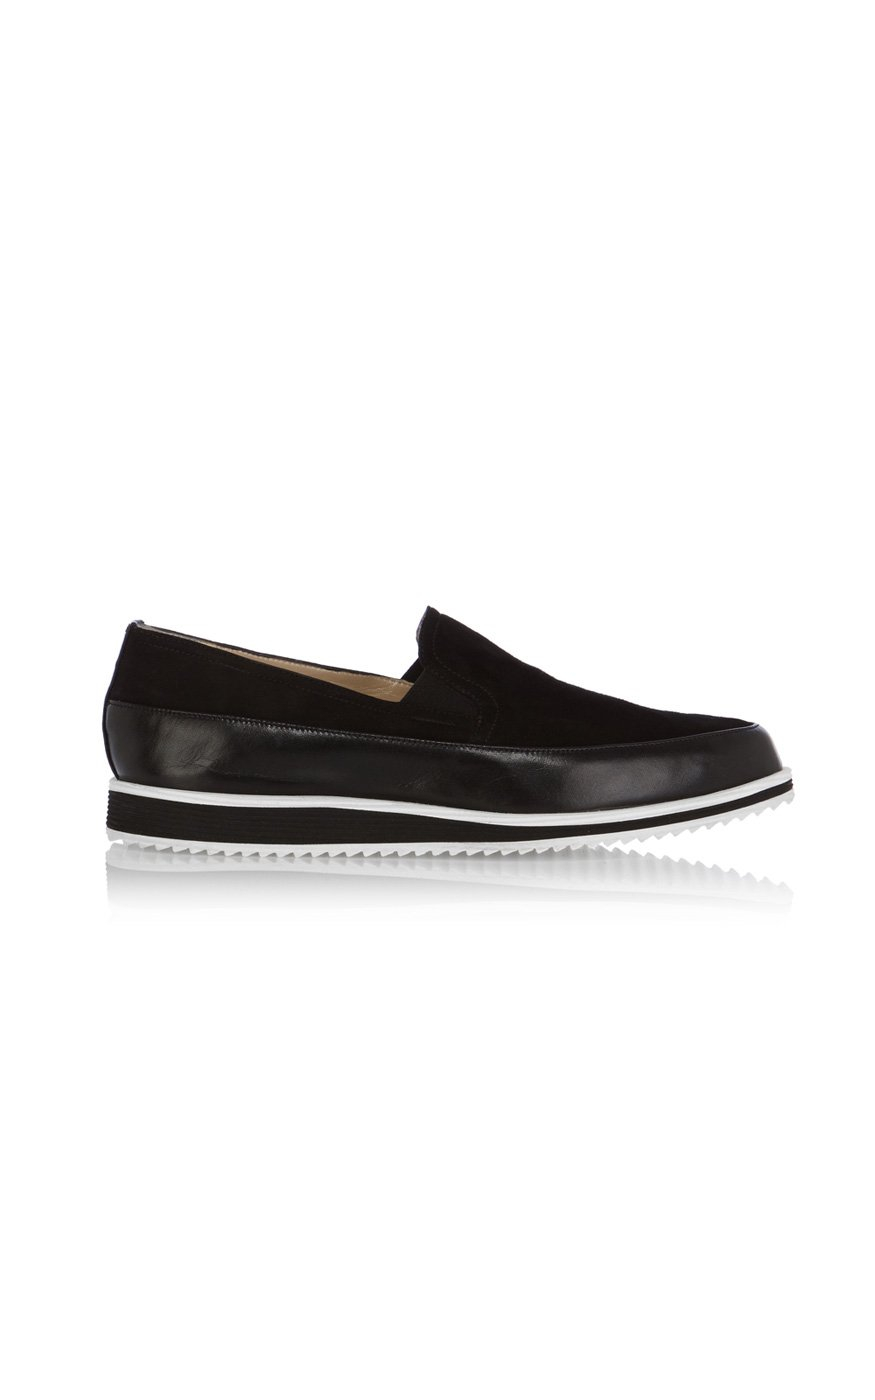 Cost Sale Online Karen Millen Sporty Slip-on Trainers How Much Cheap Online Cheap Sale High Quality Cheap Sale Footlocker Pictures ta5BeBwa